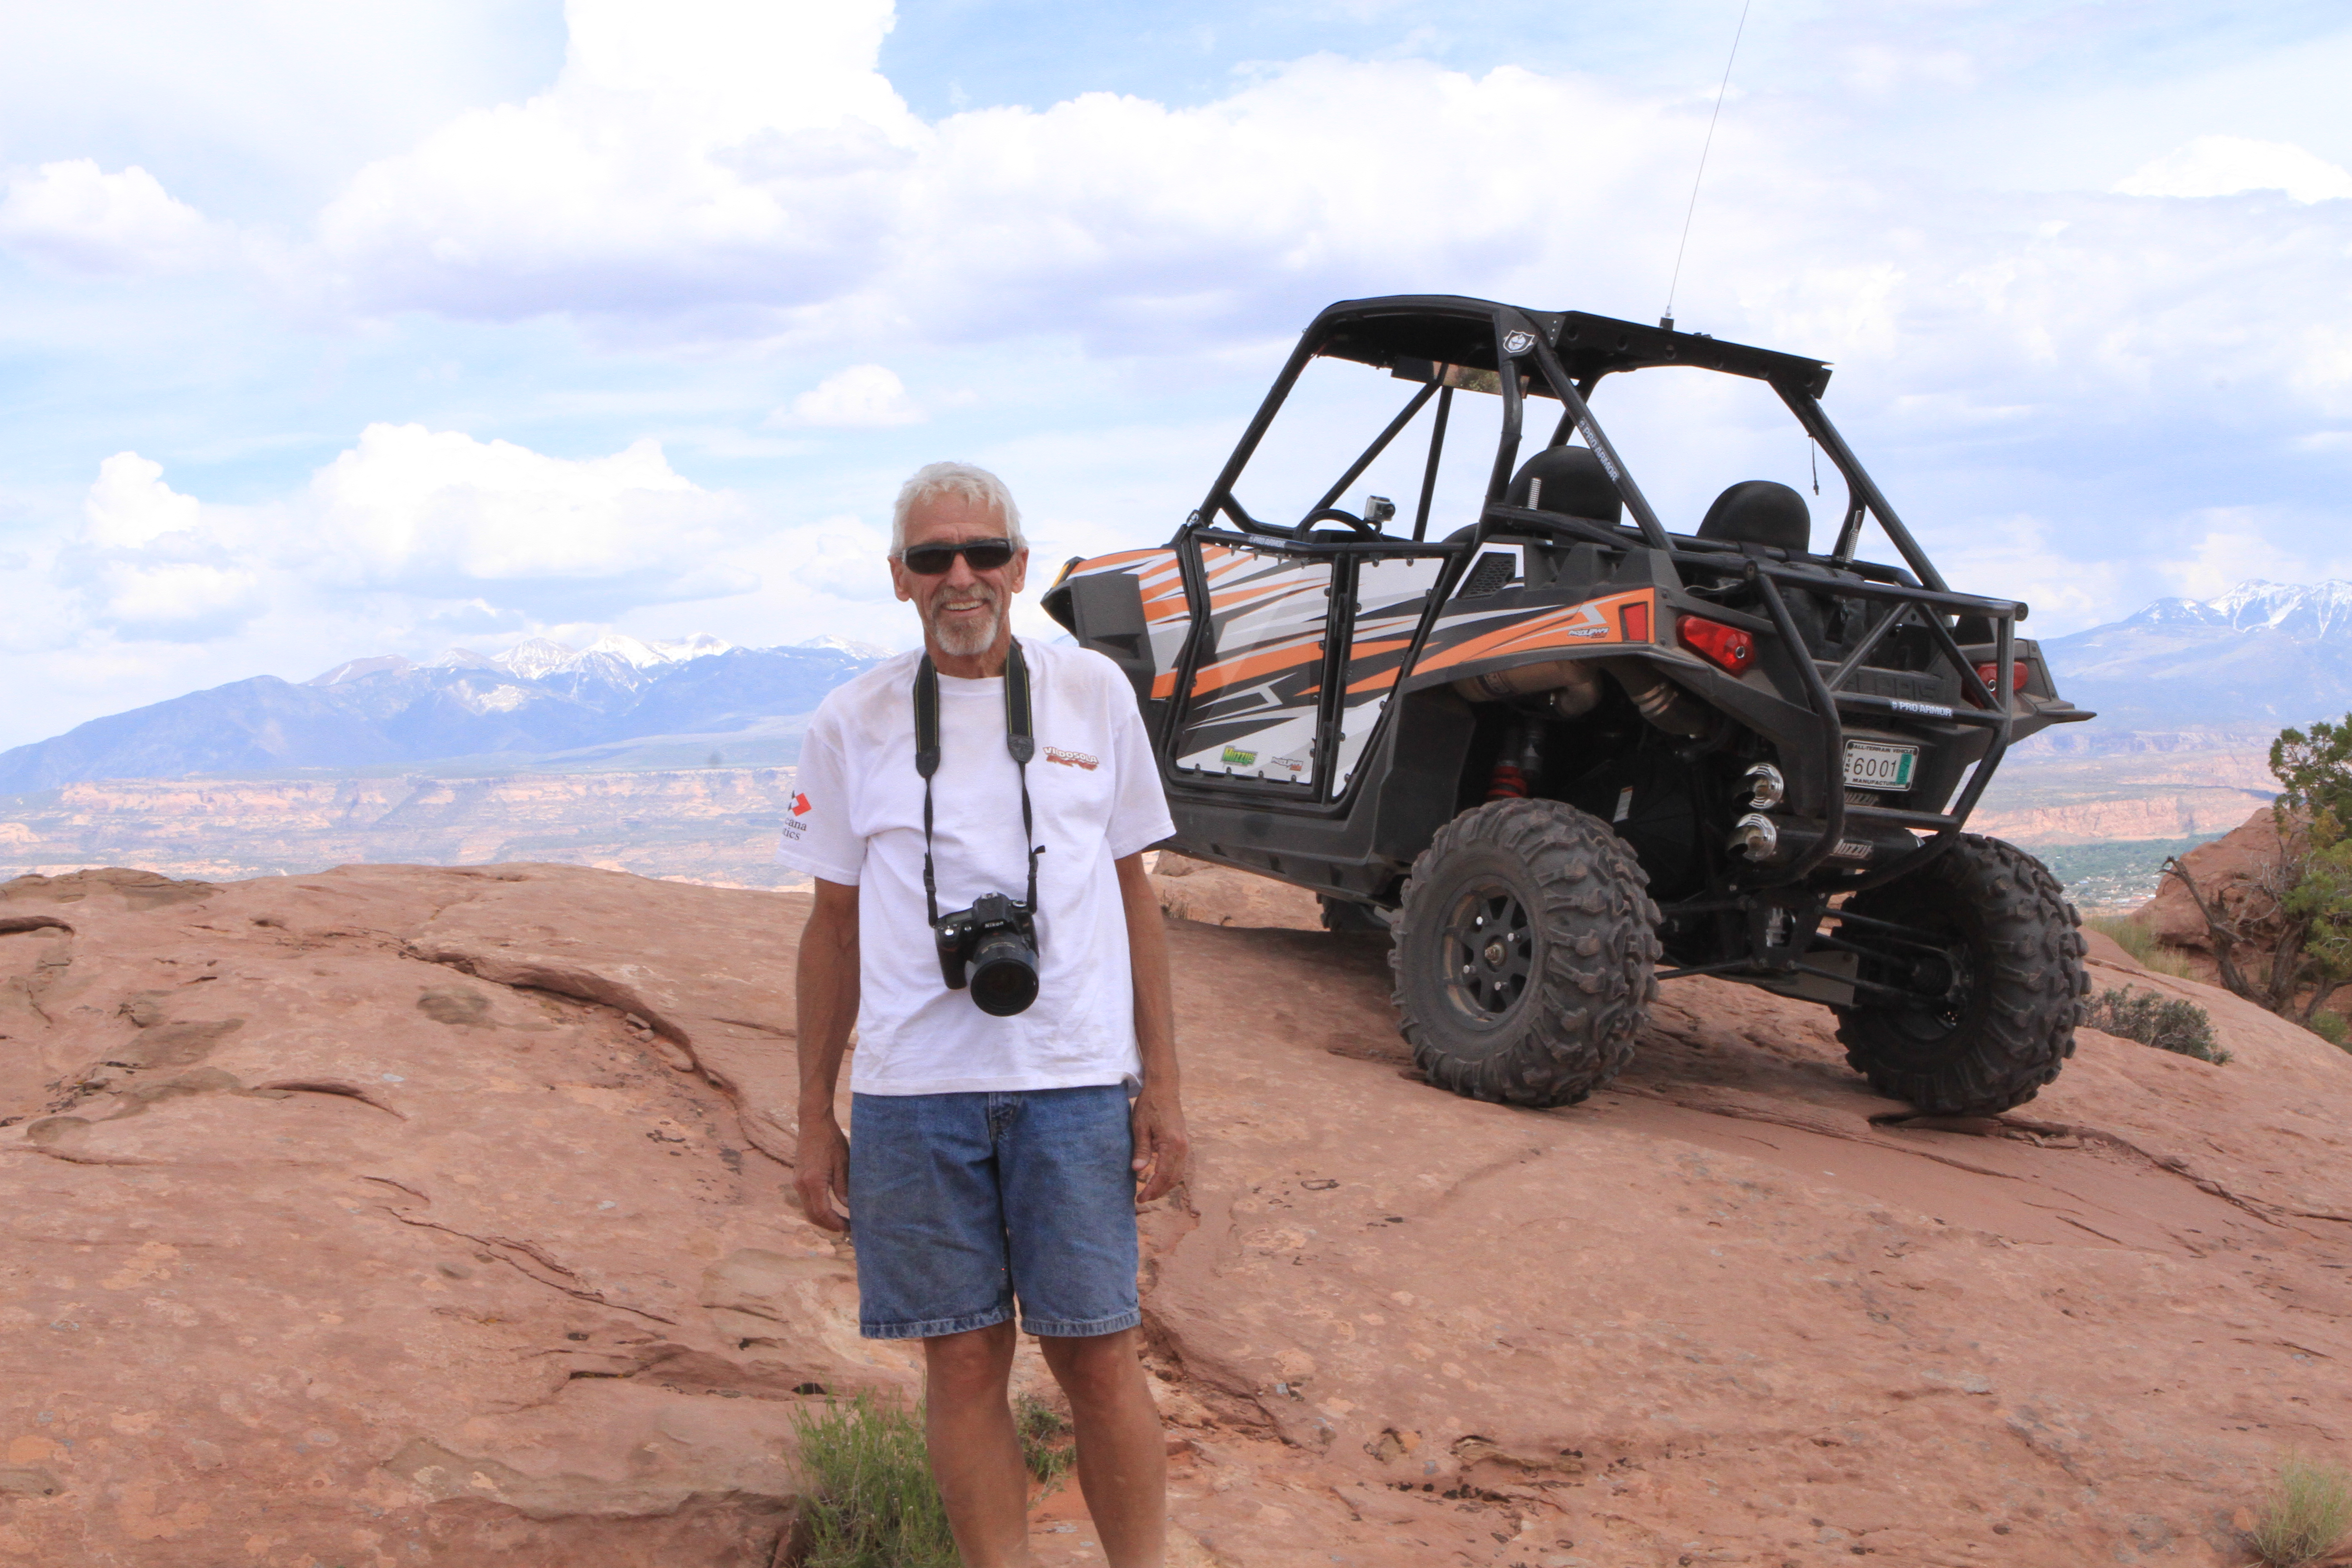 Taken in 2013, Wally was in the heat of battle with cancer but still made it to Moab to ride with us. We had a great day on the trail that afternoon. Of course he was the leader.